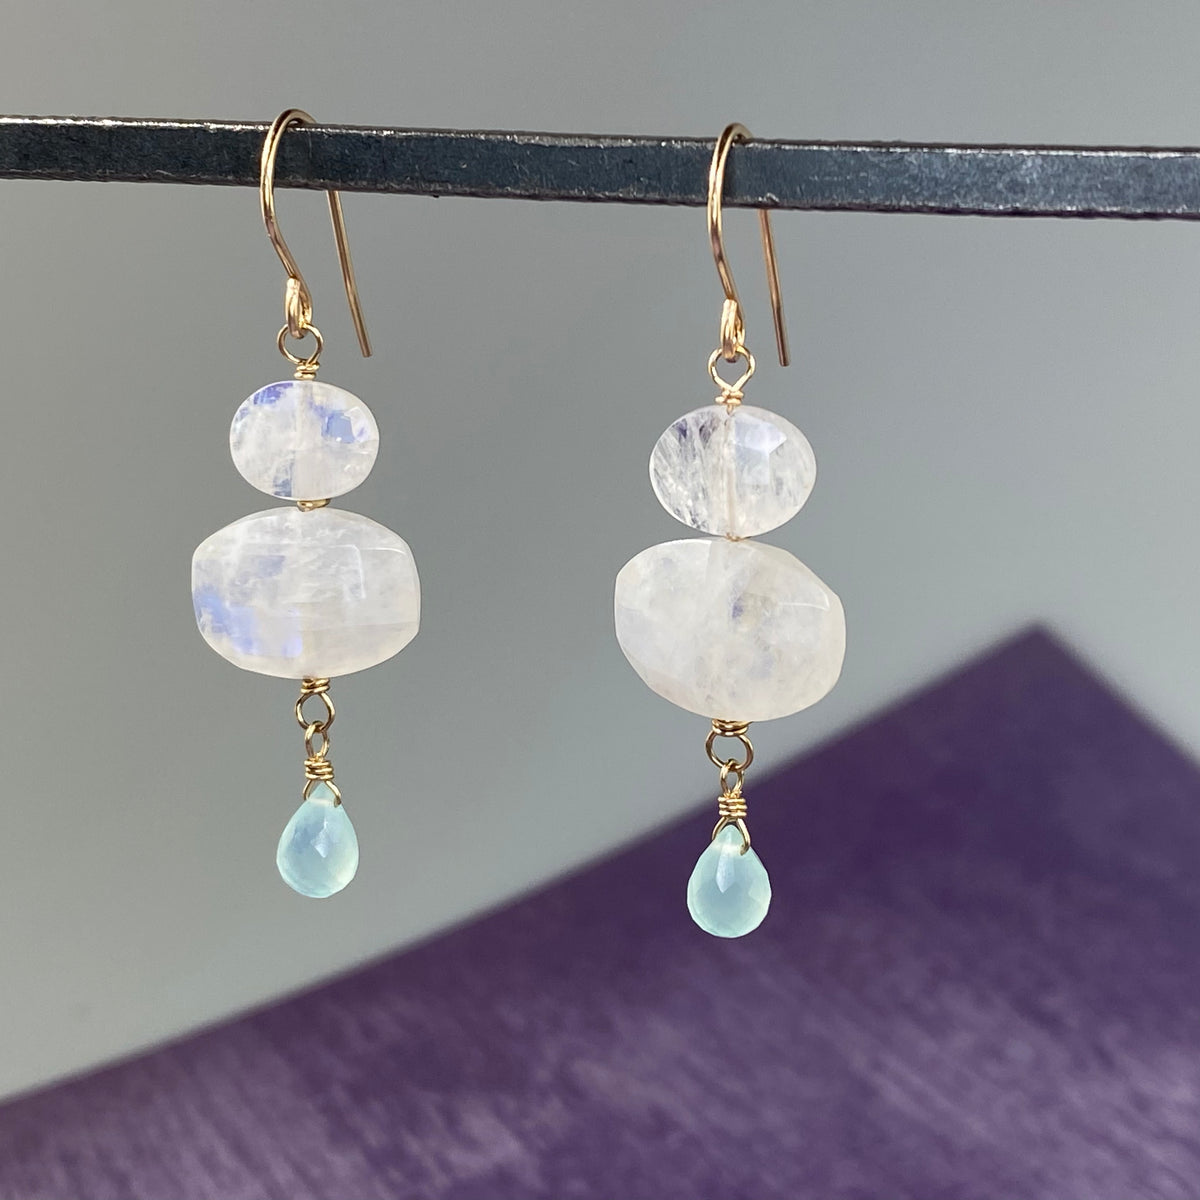 Moonstone Pebble Earrings - Heart of the Home PA